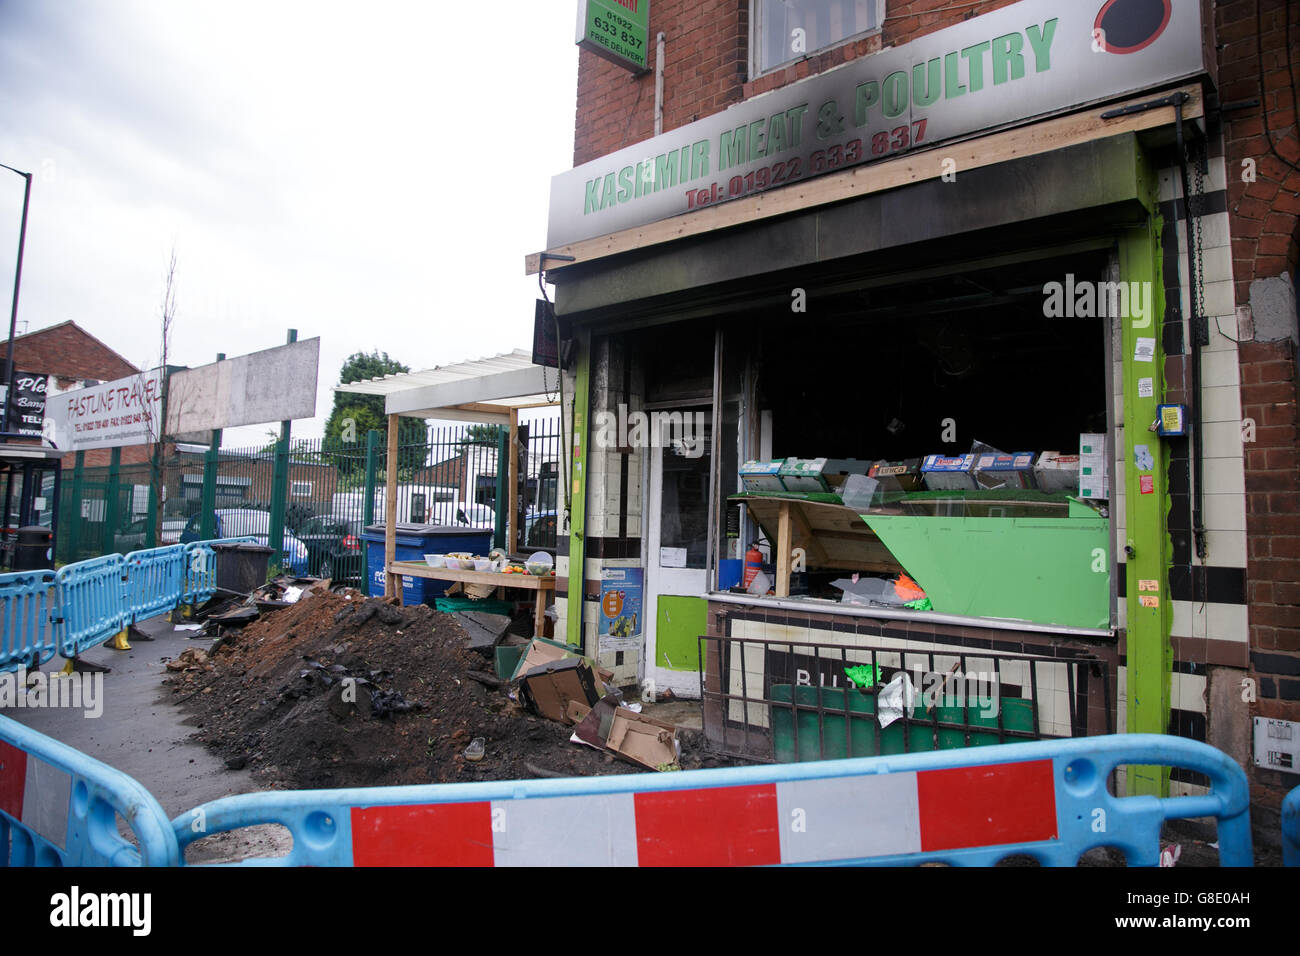 Walsall, Uk. 28, June, 2016. Muslim owned Halal shop is firebombed in what is said to be a racist attack post Brexit - Stock Image